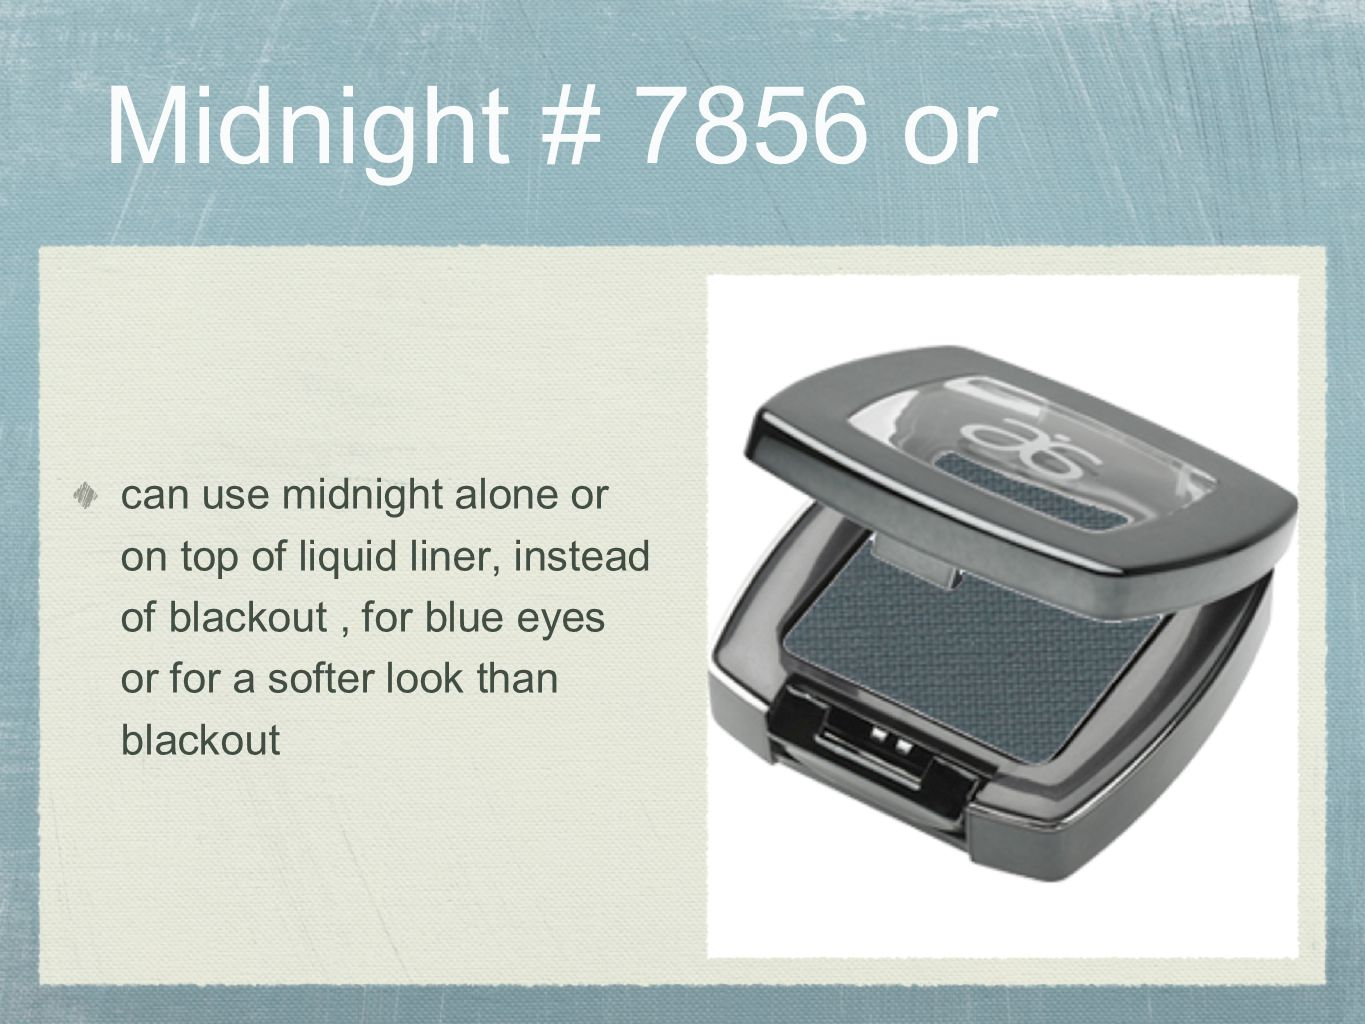 Midnight # 7856 or can use midnight alone or on top of liquid liner, instead of blackout , for blue eyes or for a softer look than blackout.